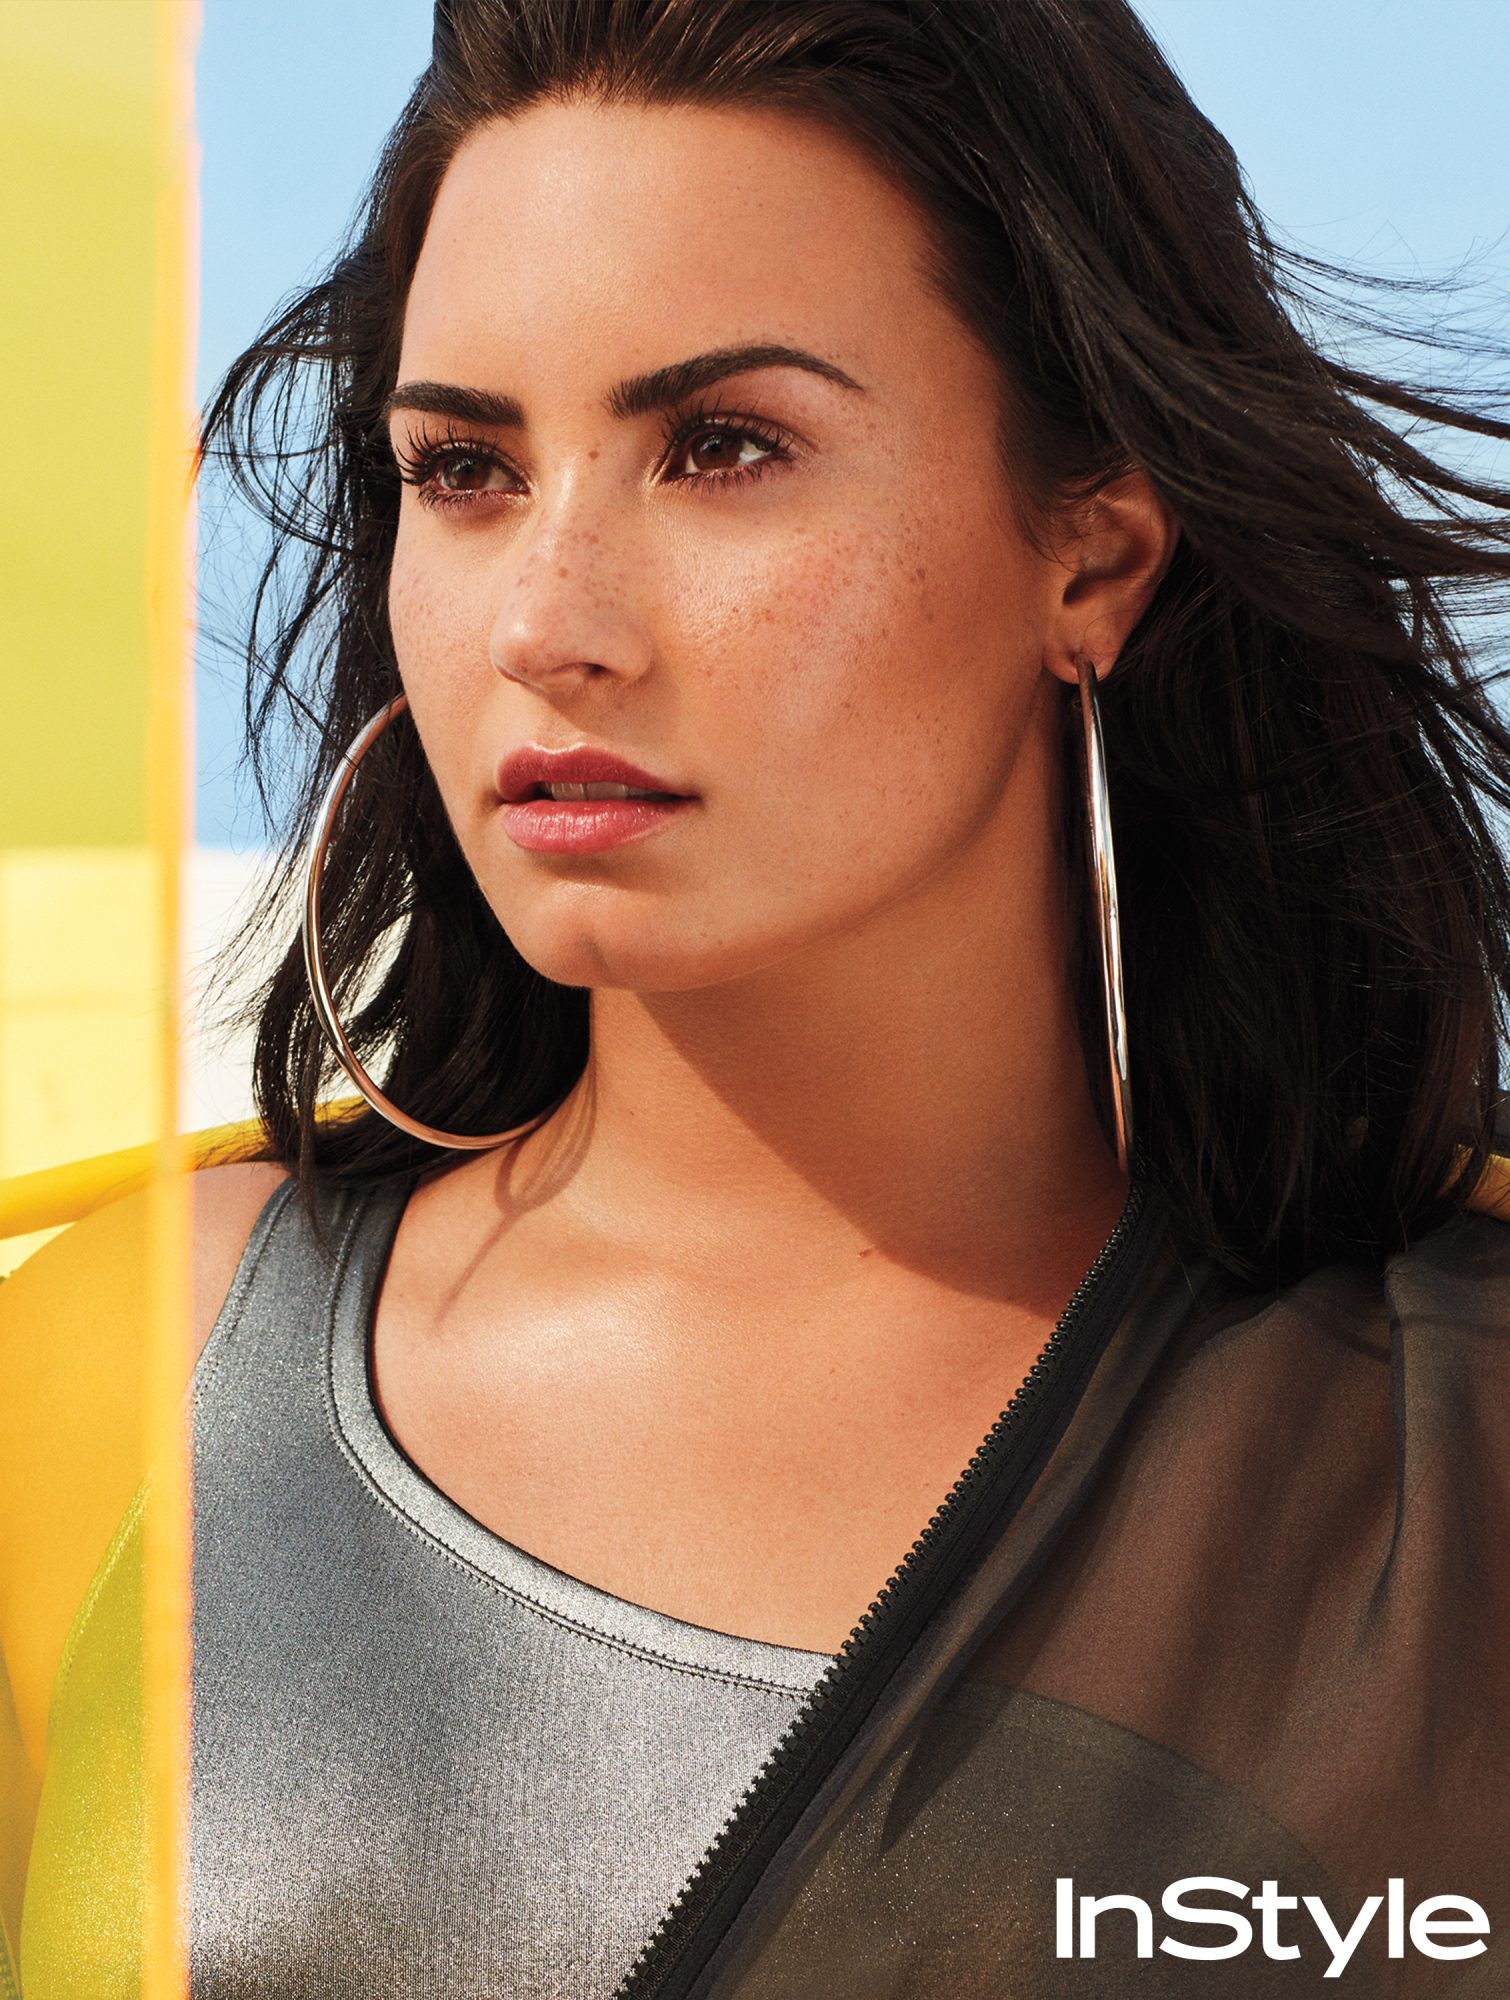 InStyle April - Demi Lovato